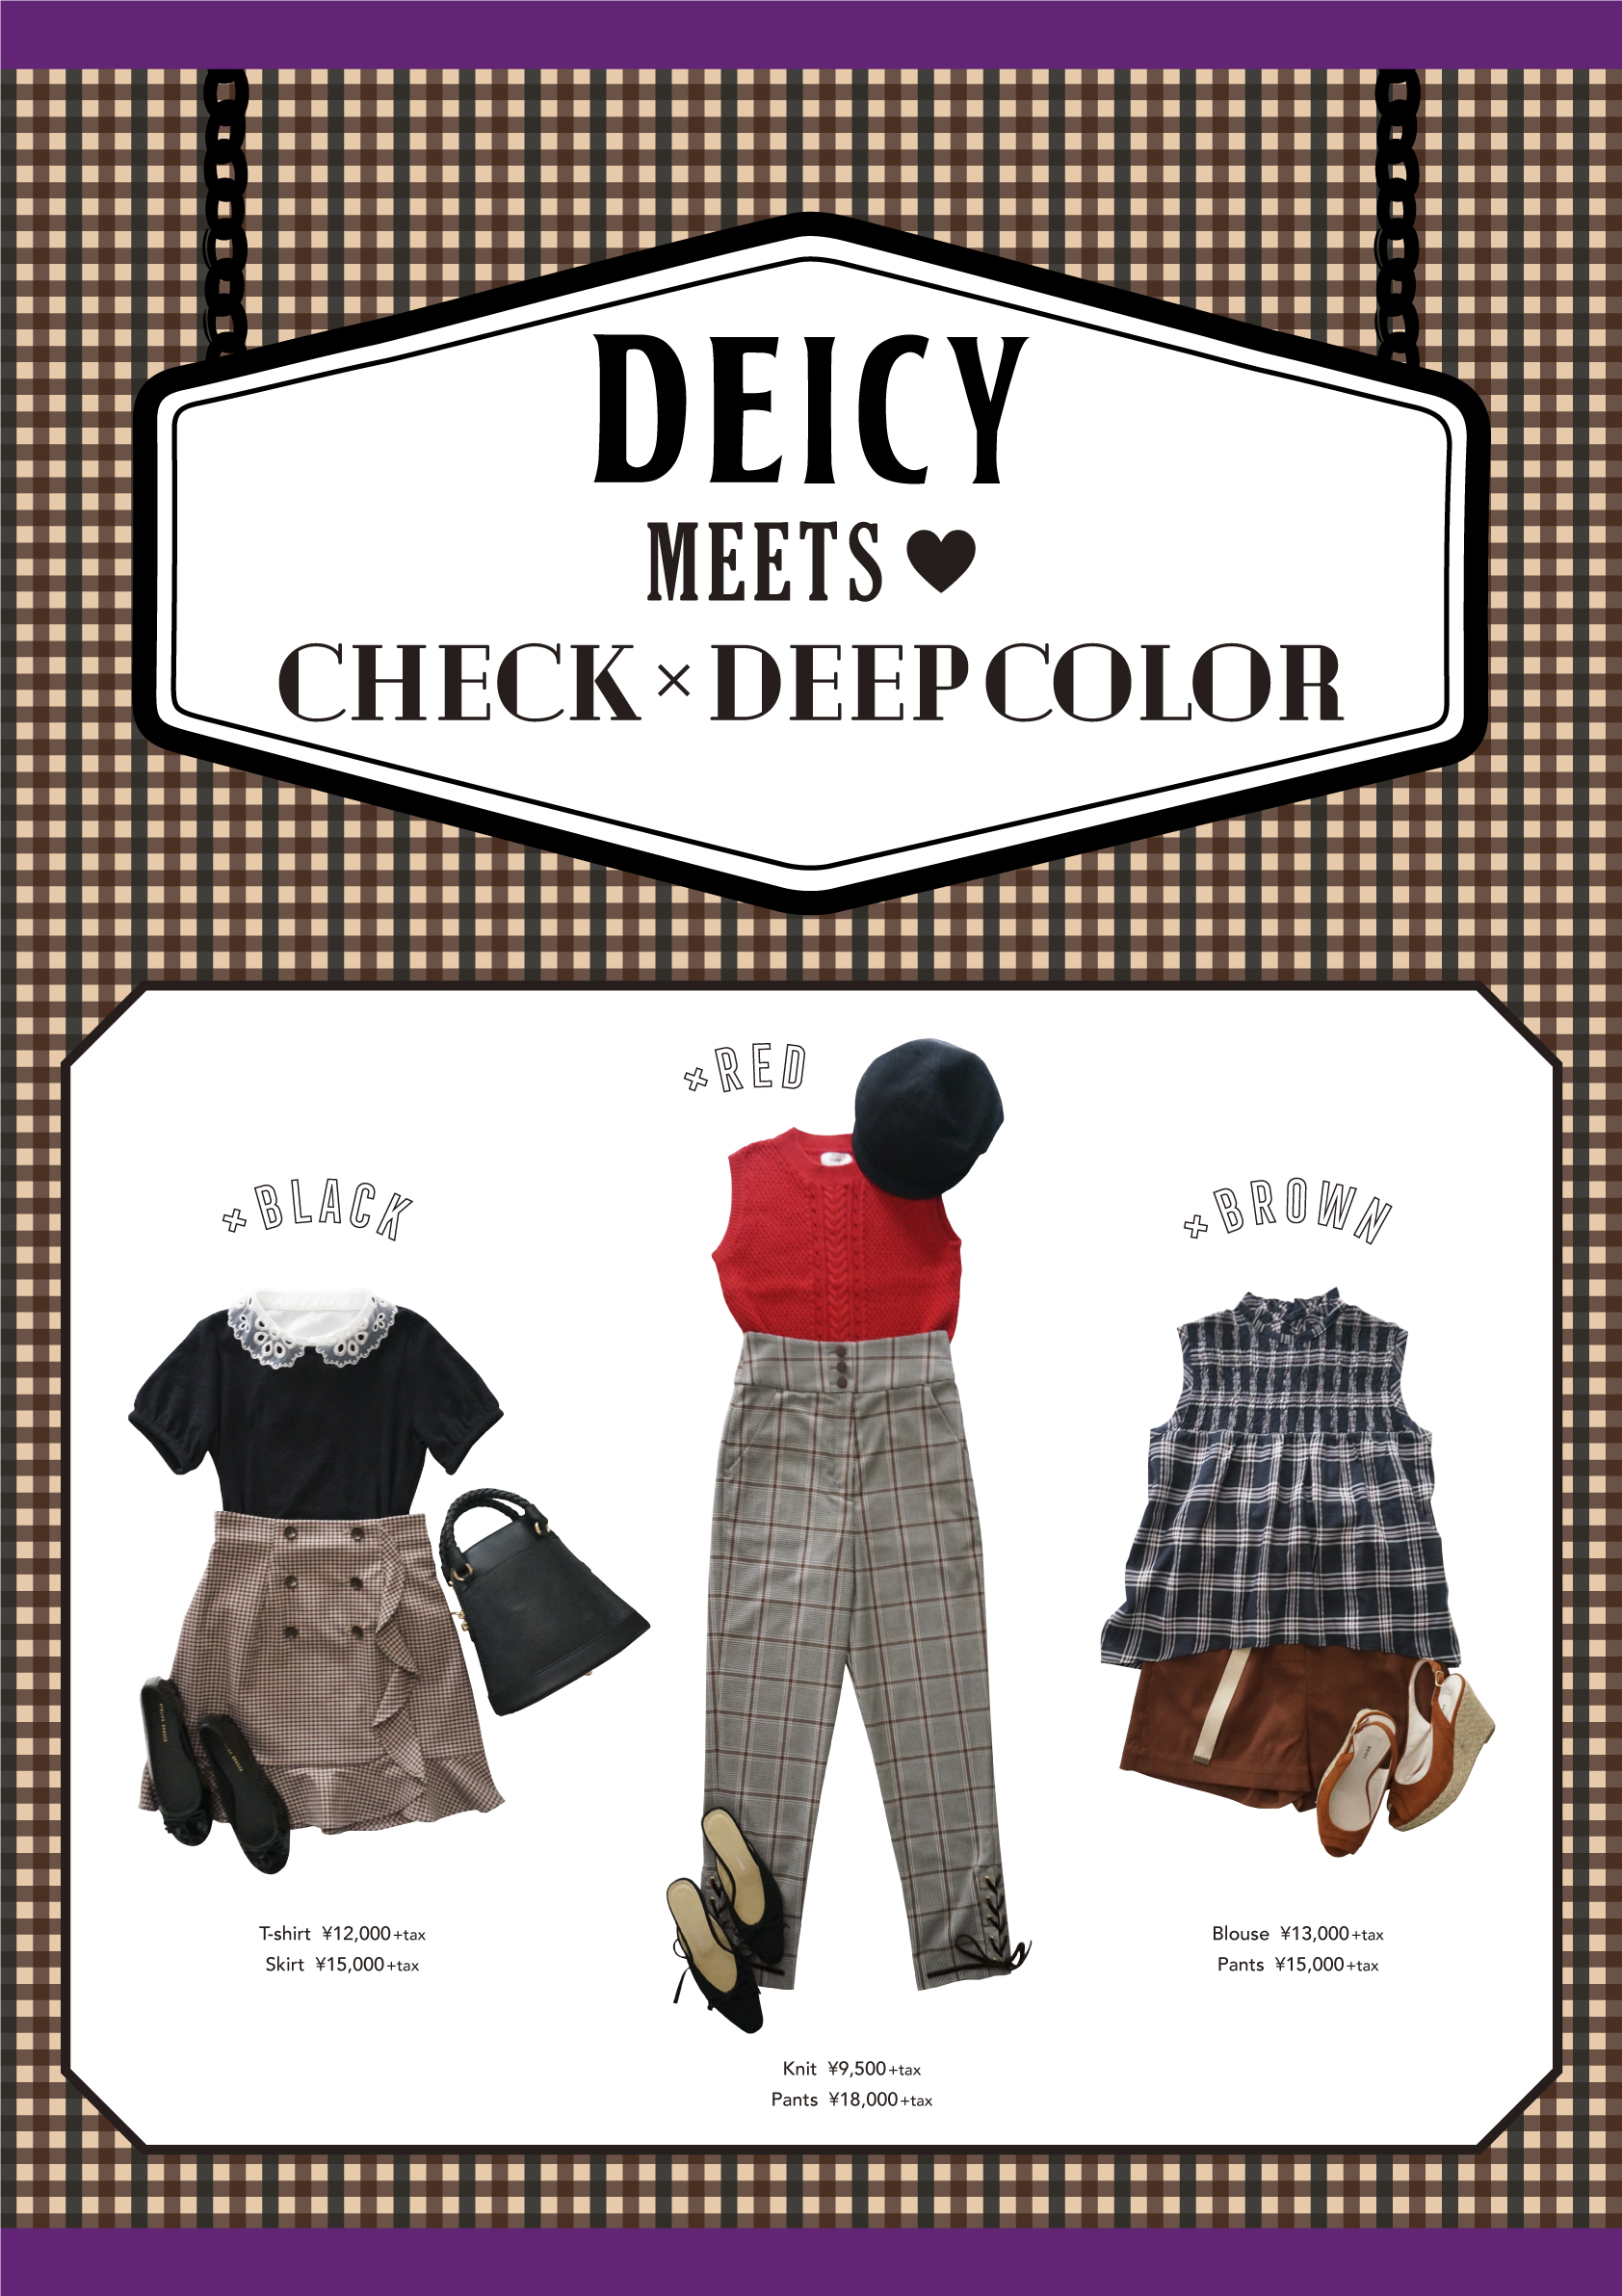 DEICY MEETS♥CHECK×DEEPCOLOR